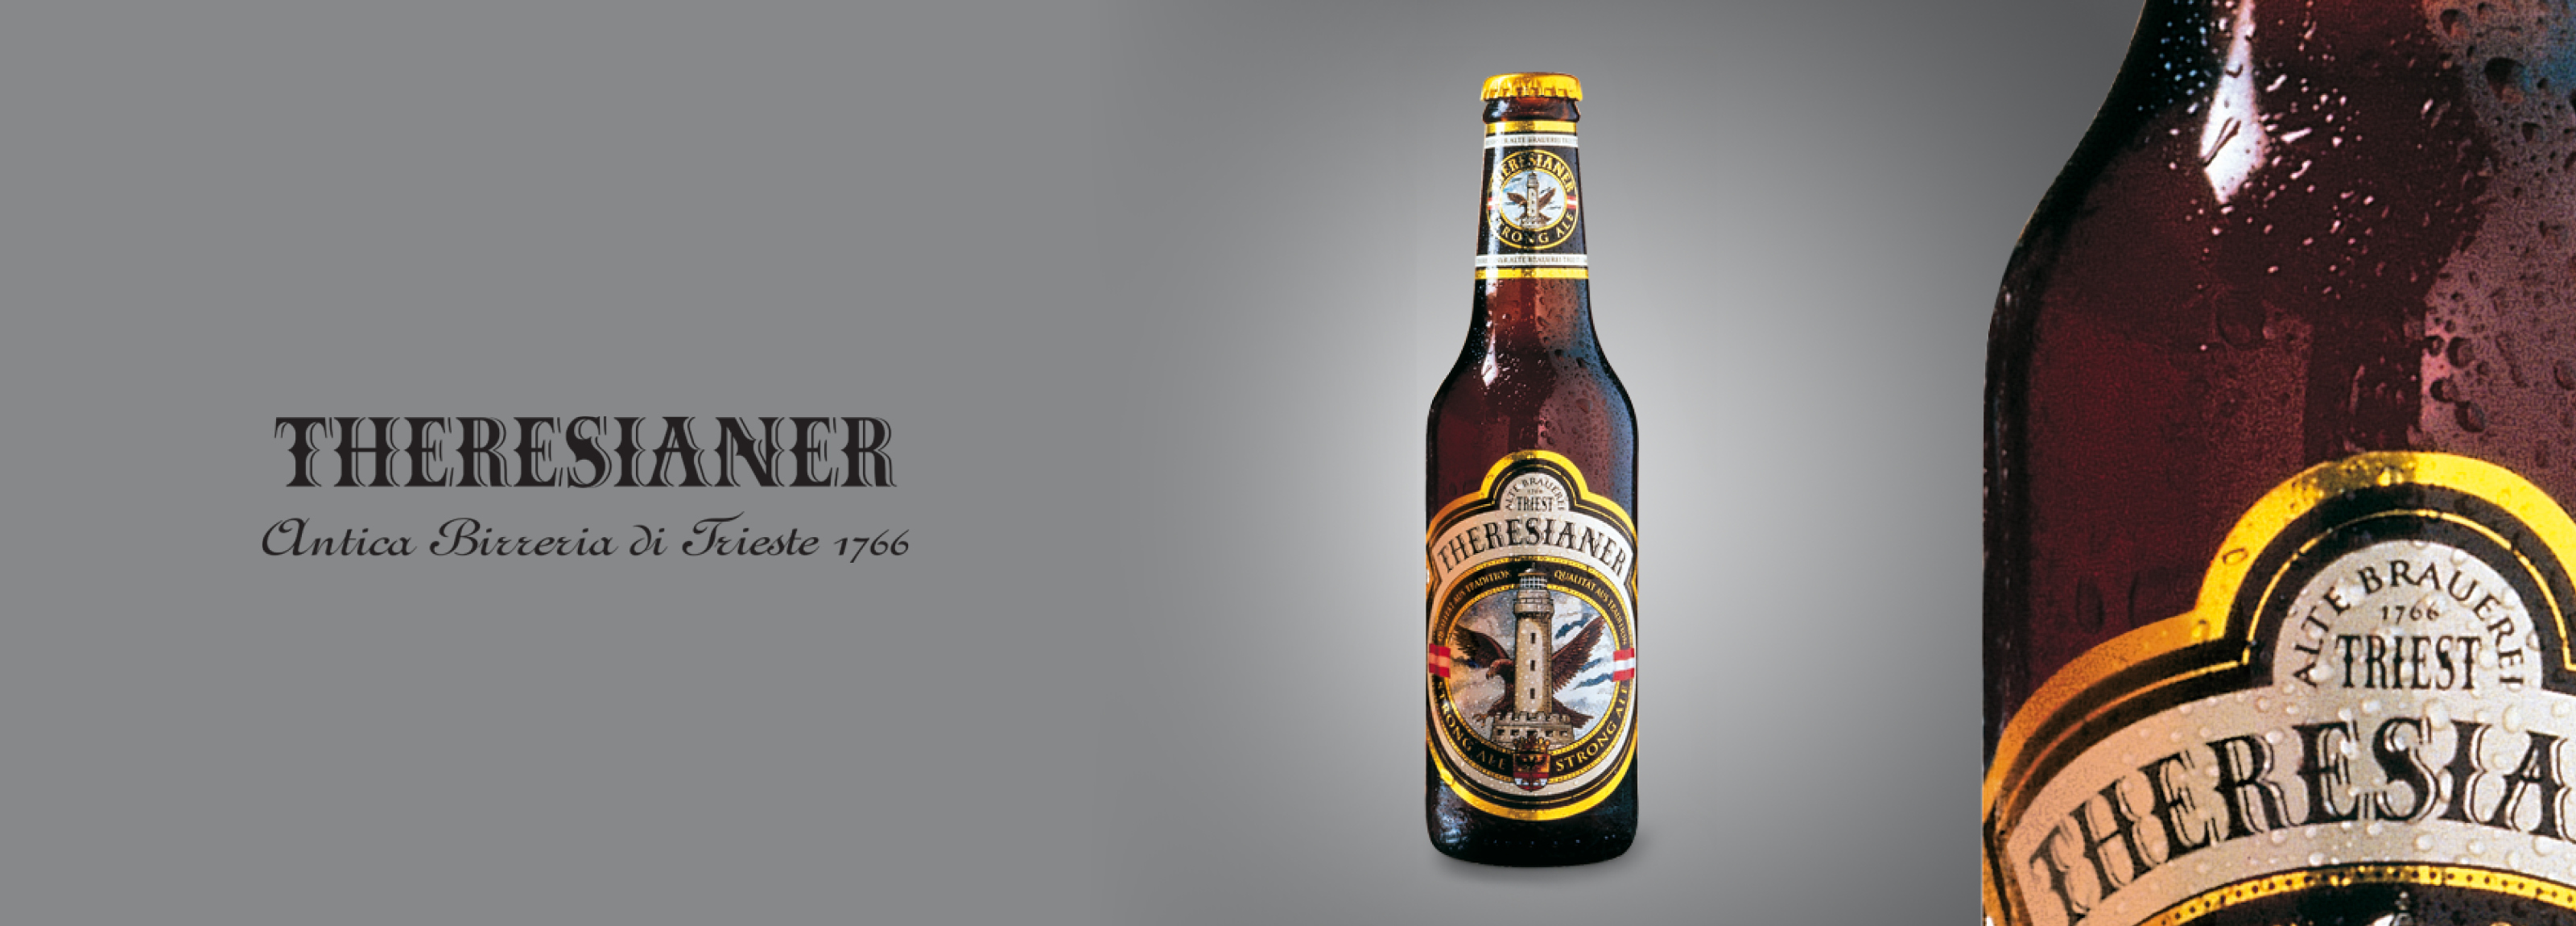 Packaging design firmato Hangar Design Group per Theresianer, uno storico produttore di birra italiano.